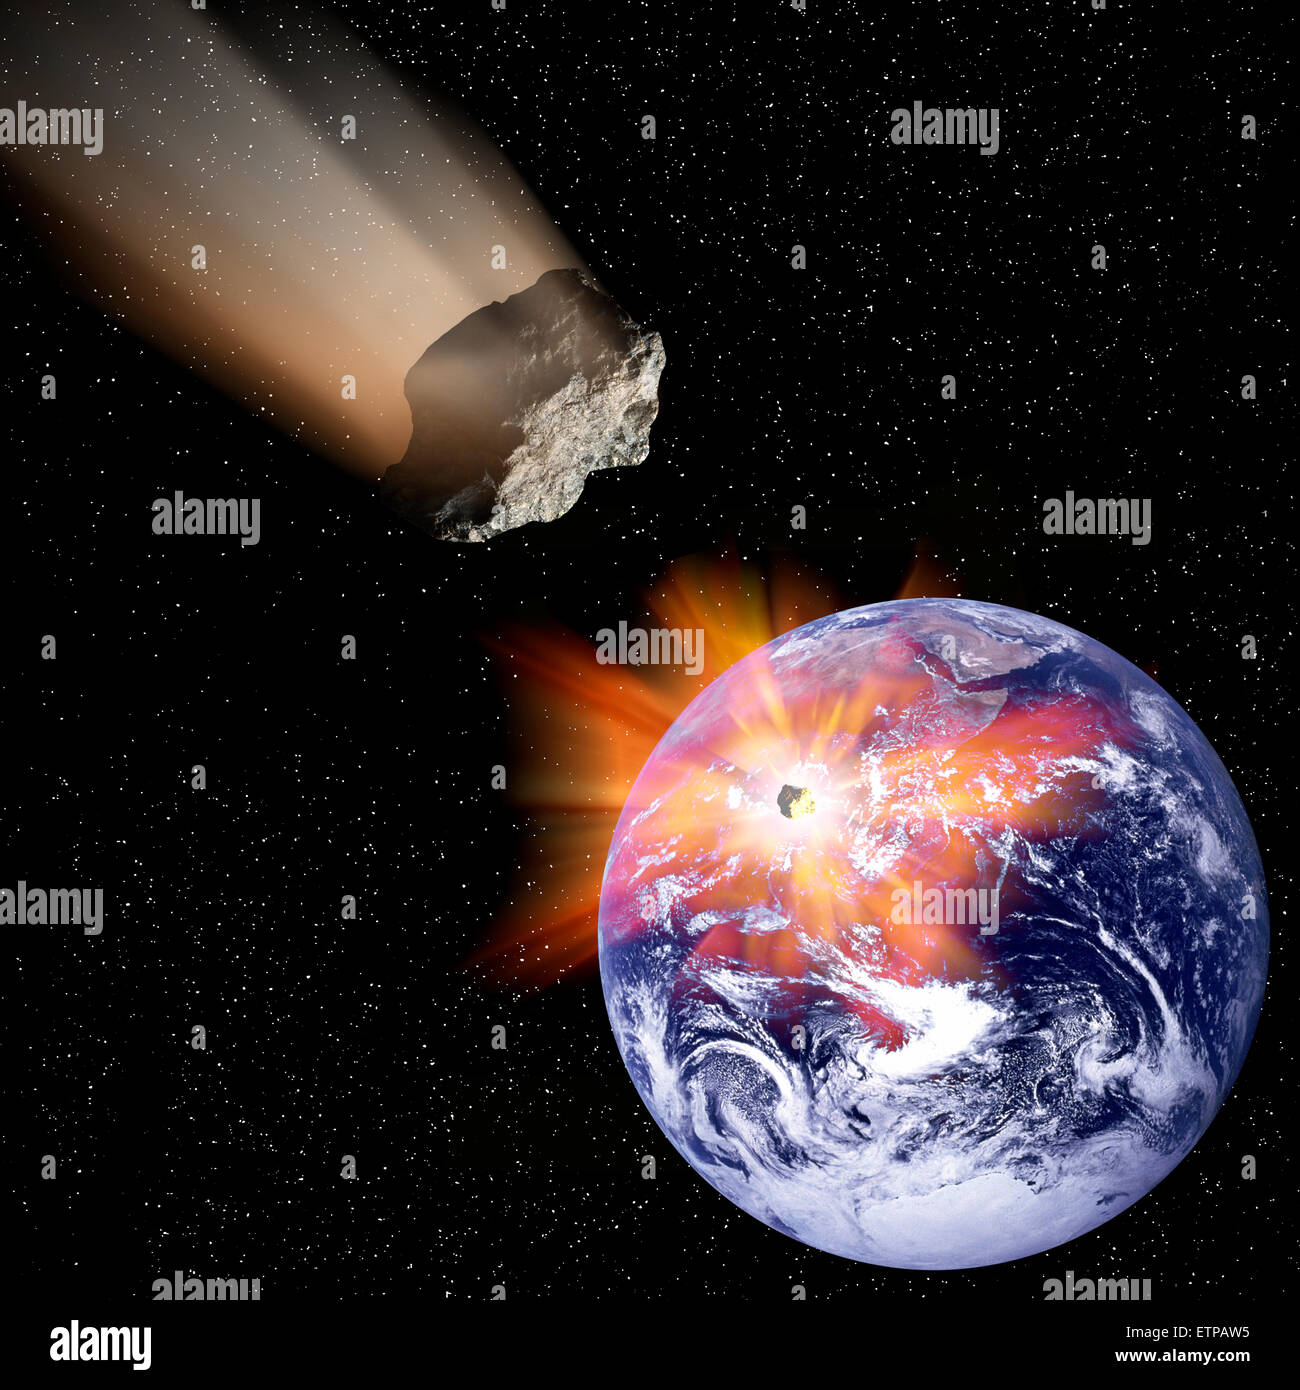 Meteor collision with Earth. - Stock Image